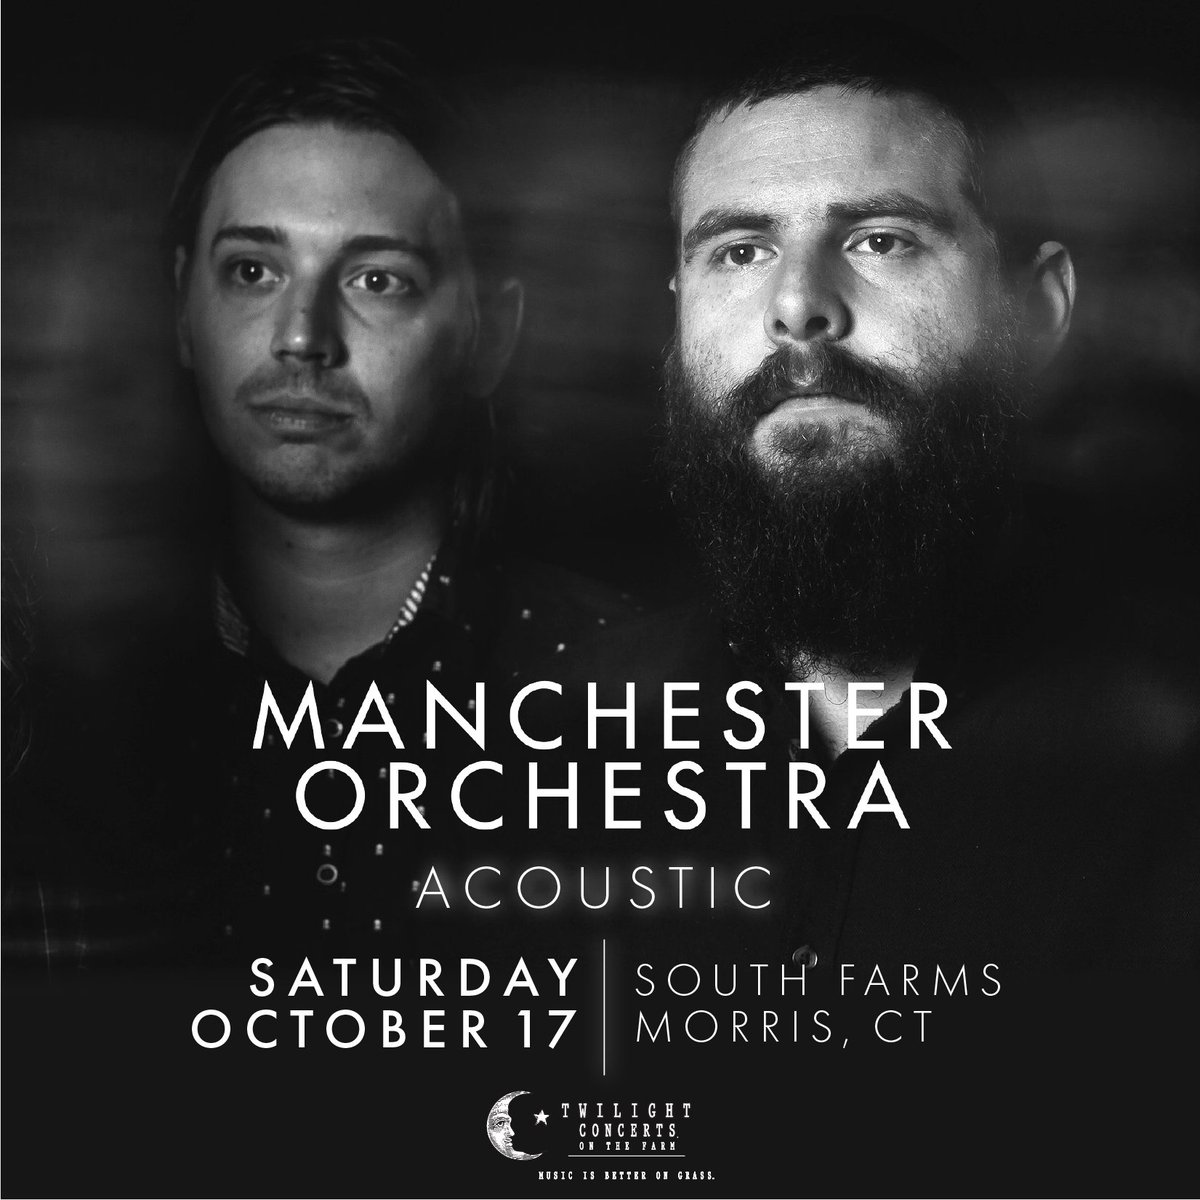 We are excited to play our first (and most likely last) show of the year. Join us for a unique stripped down performance Saturday, October 17 at South Farms in Morris, CT – get your tickets while you can!  Tickets go on sale tomorrow, Sept. 24 at 10am ET: https://t.co/0KK7dfyaXQ https://t.co/Bbzq6jCoRa